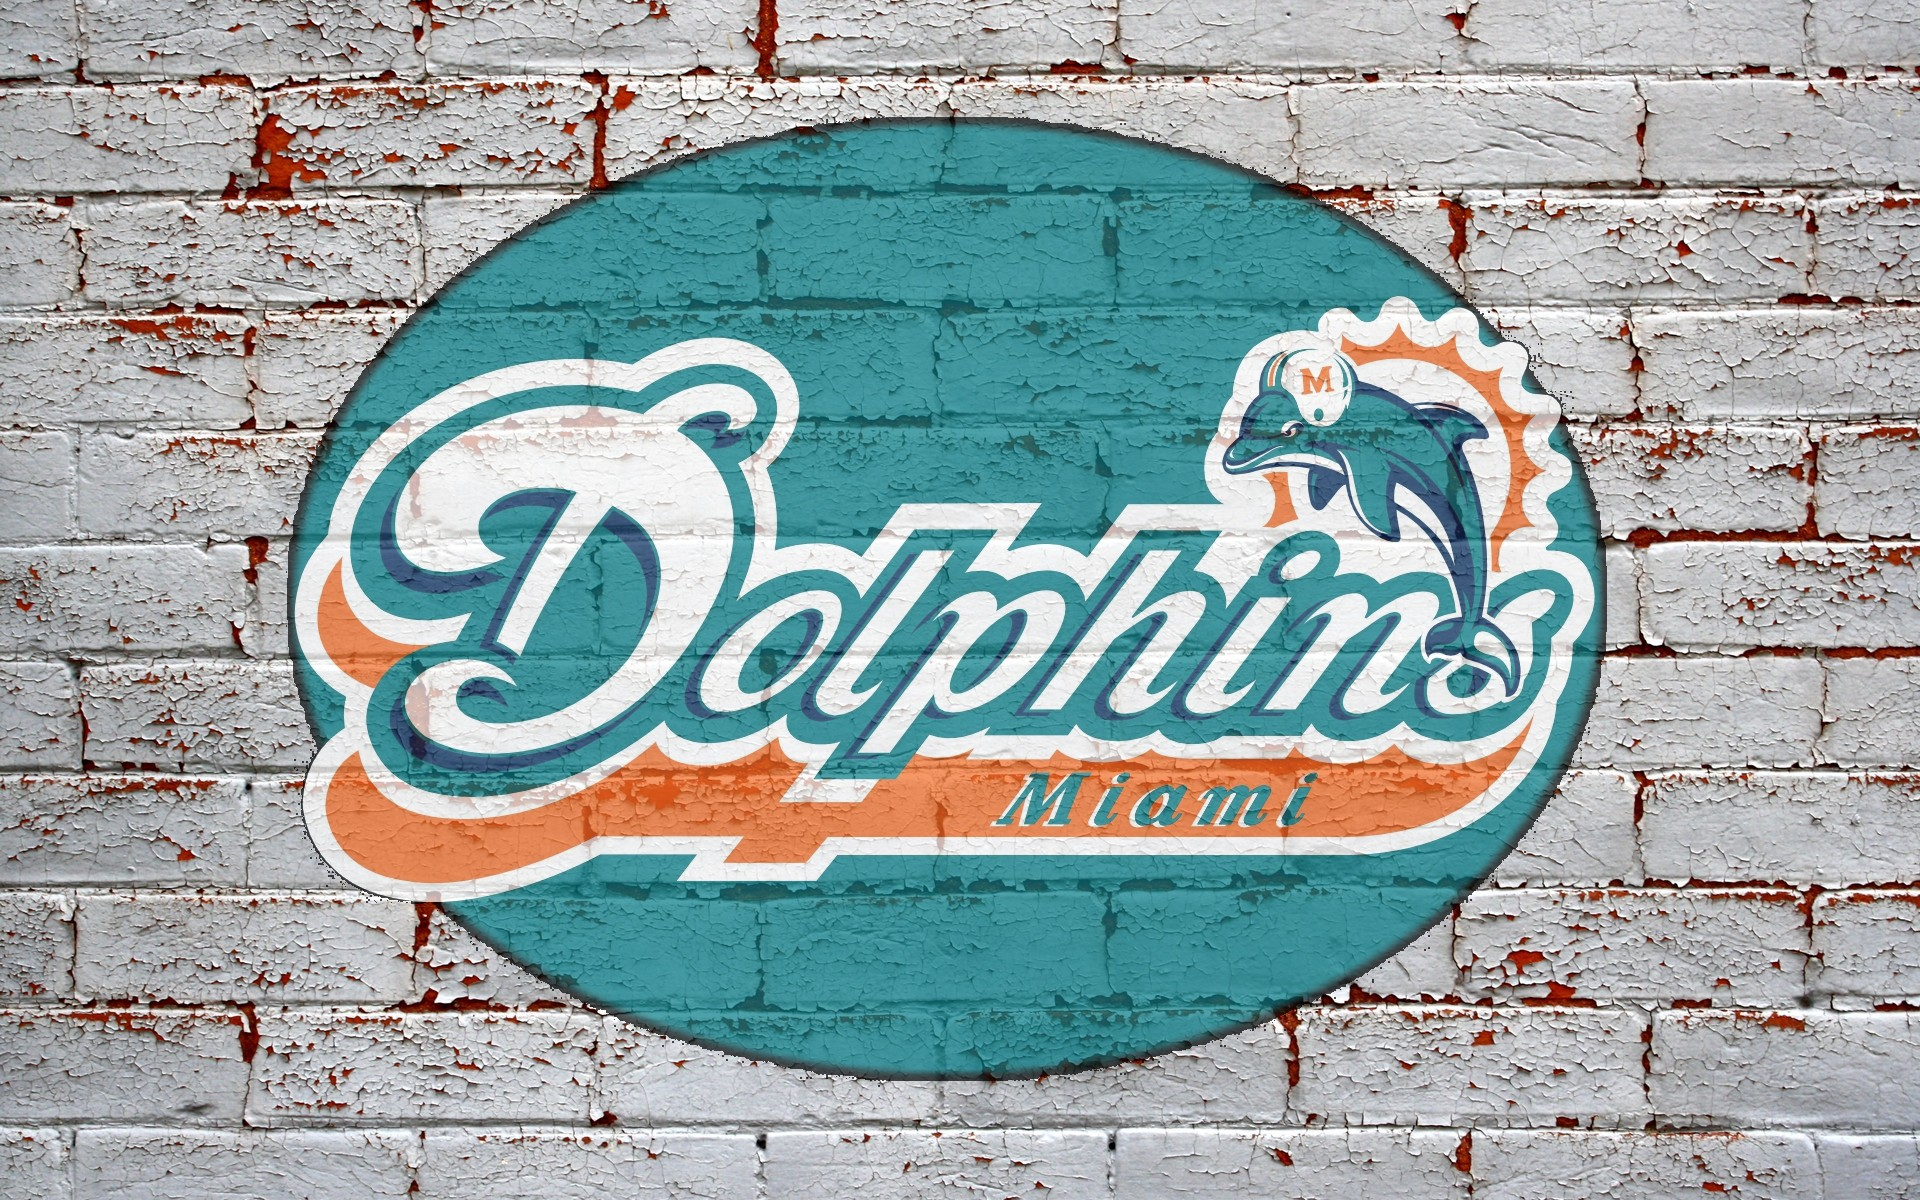 1920x1200 - Miami Dolphins Wallpapers 18